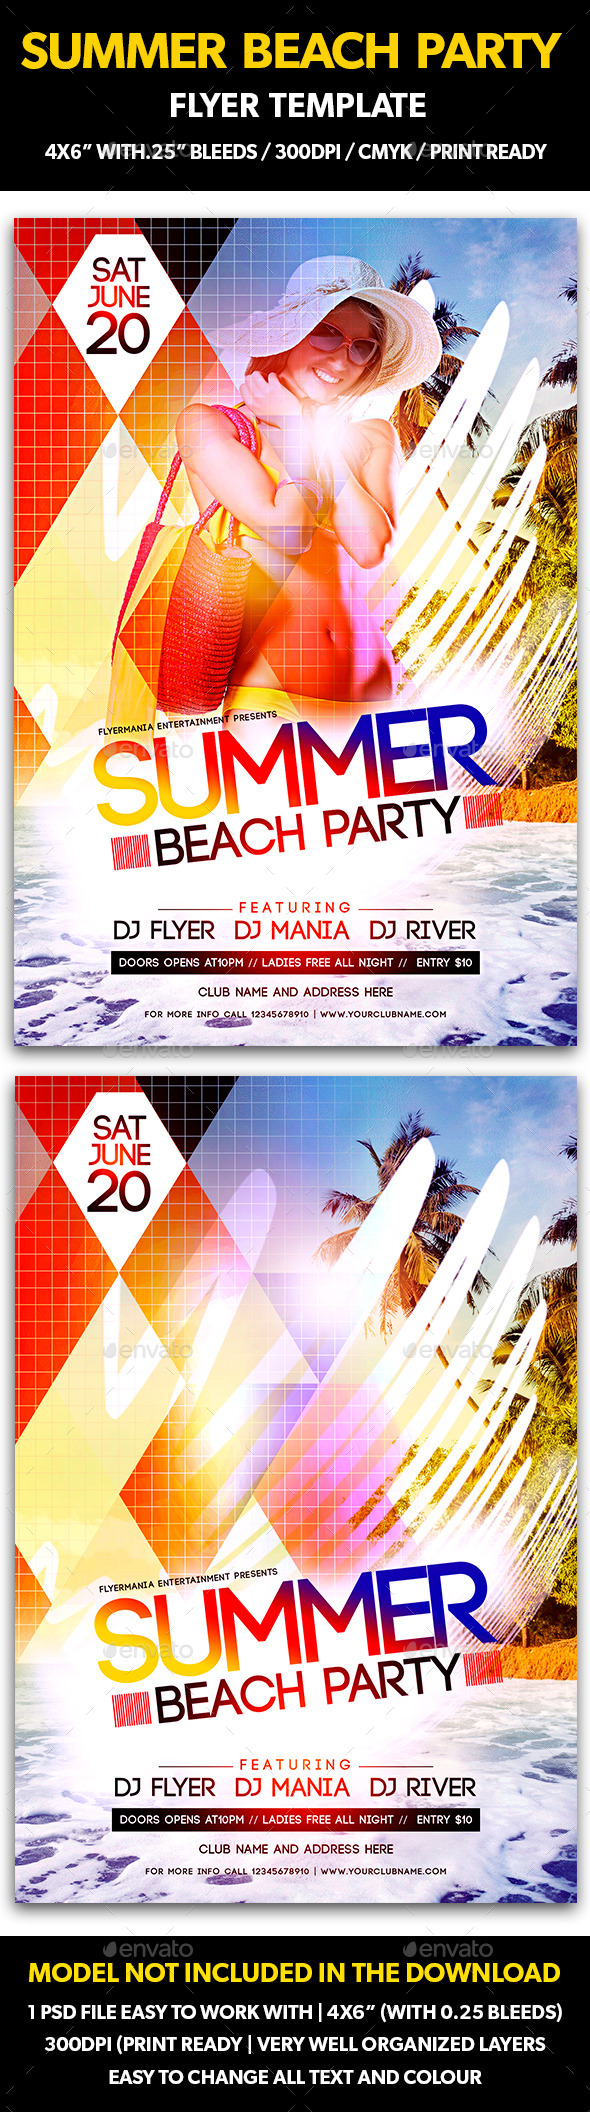 GraphicRiver Summer Beach Party Flyer Template 11195543